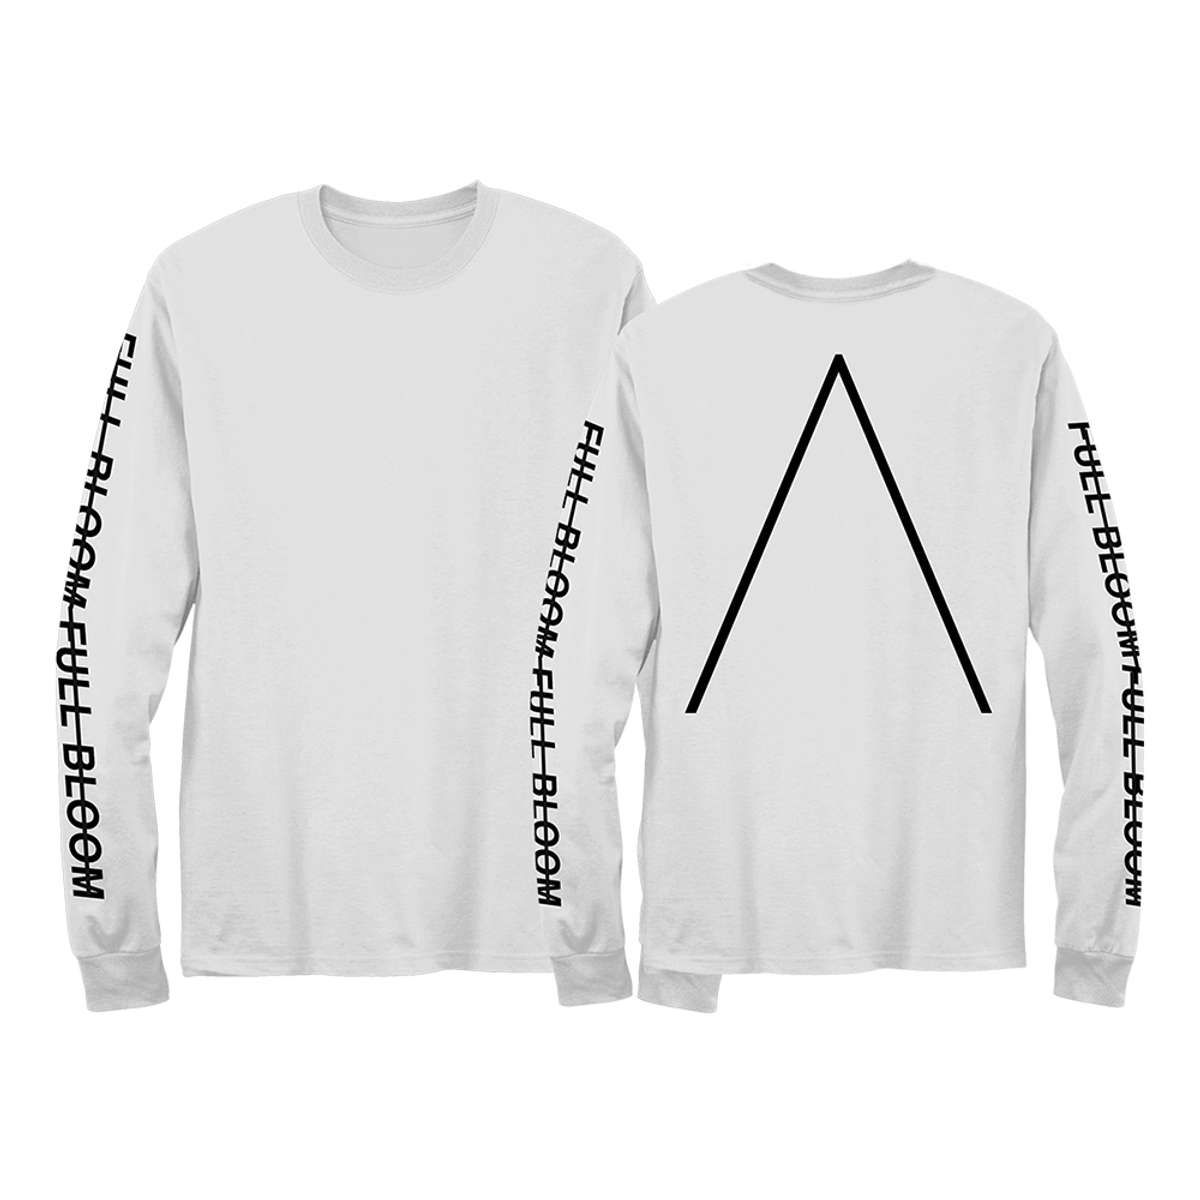 Full Bloom Long-Sleeved T-Shirt [White] - Alpines